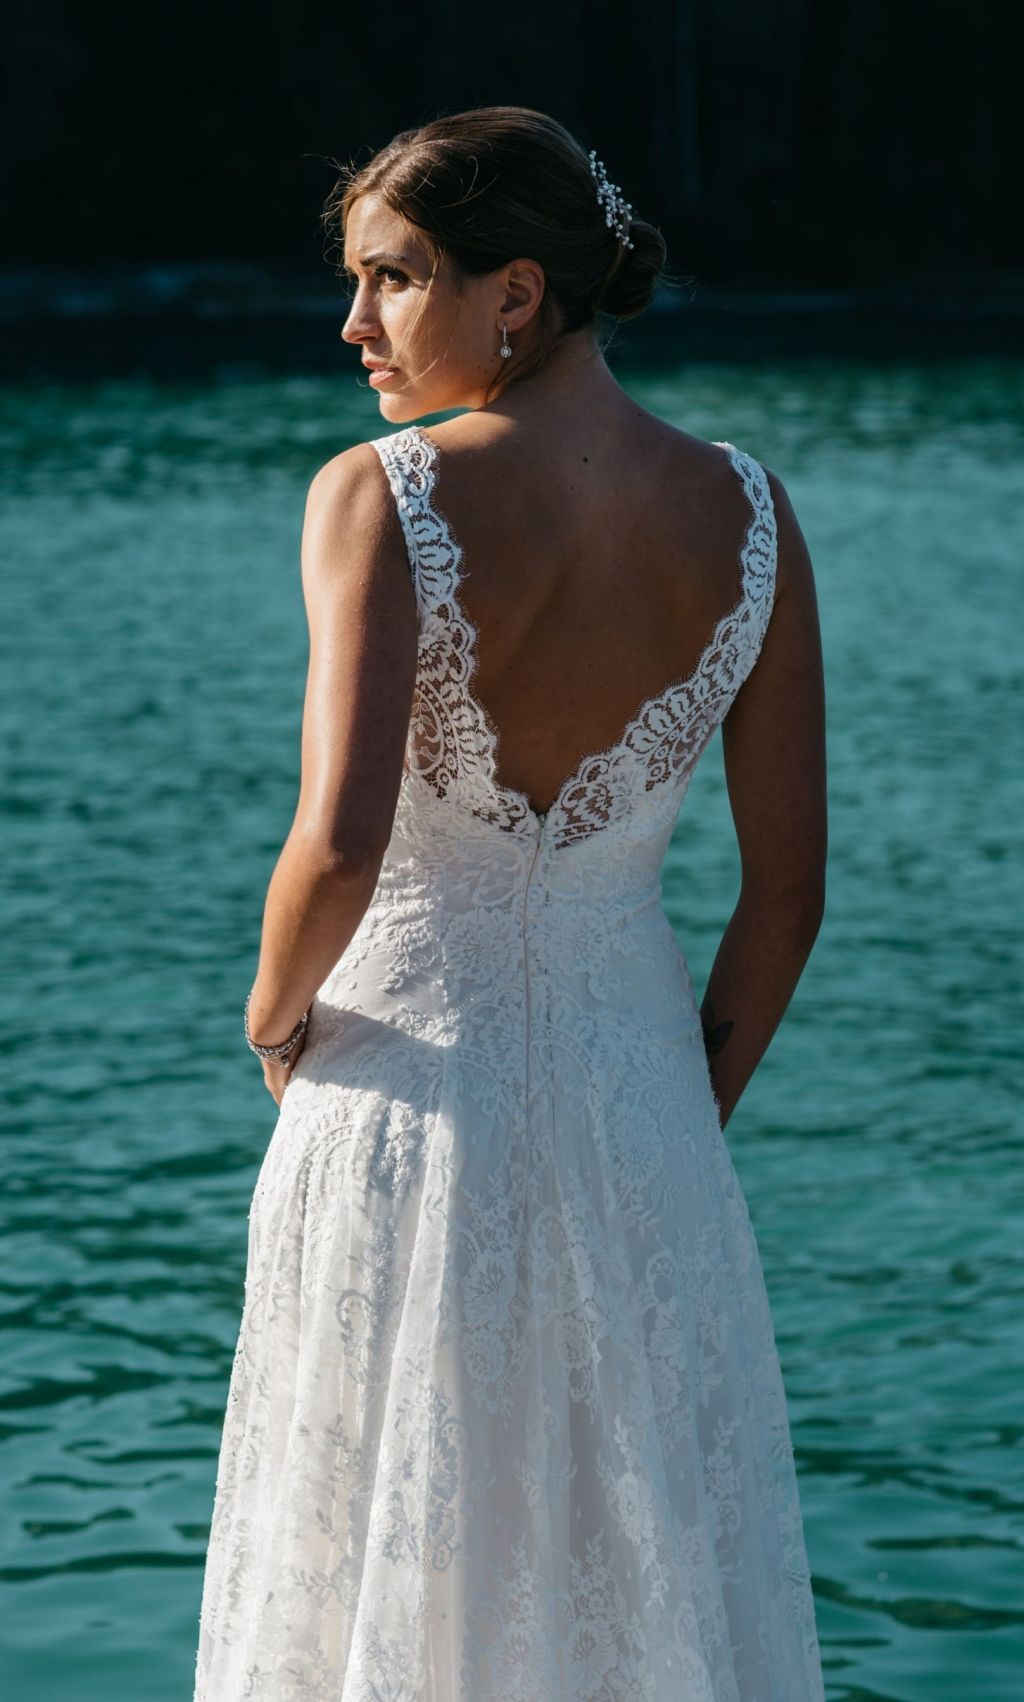 Fancy Used Bridal Gowns Image - Wedding Dress - googeb.com